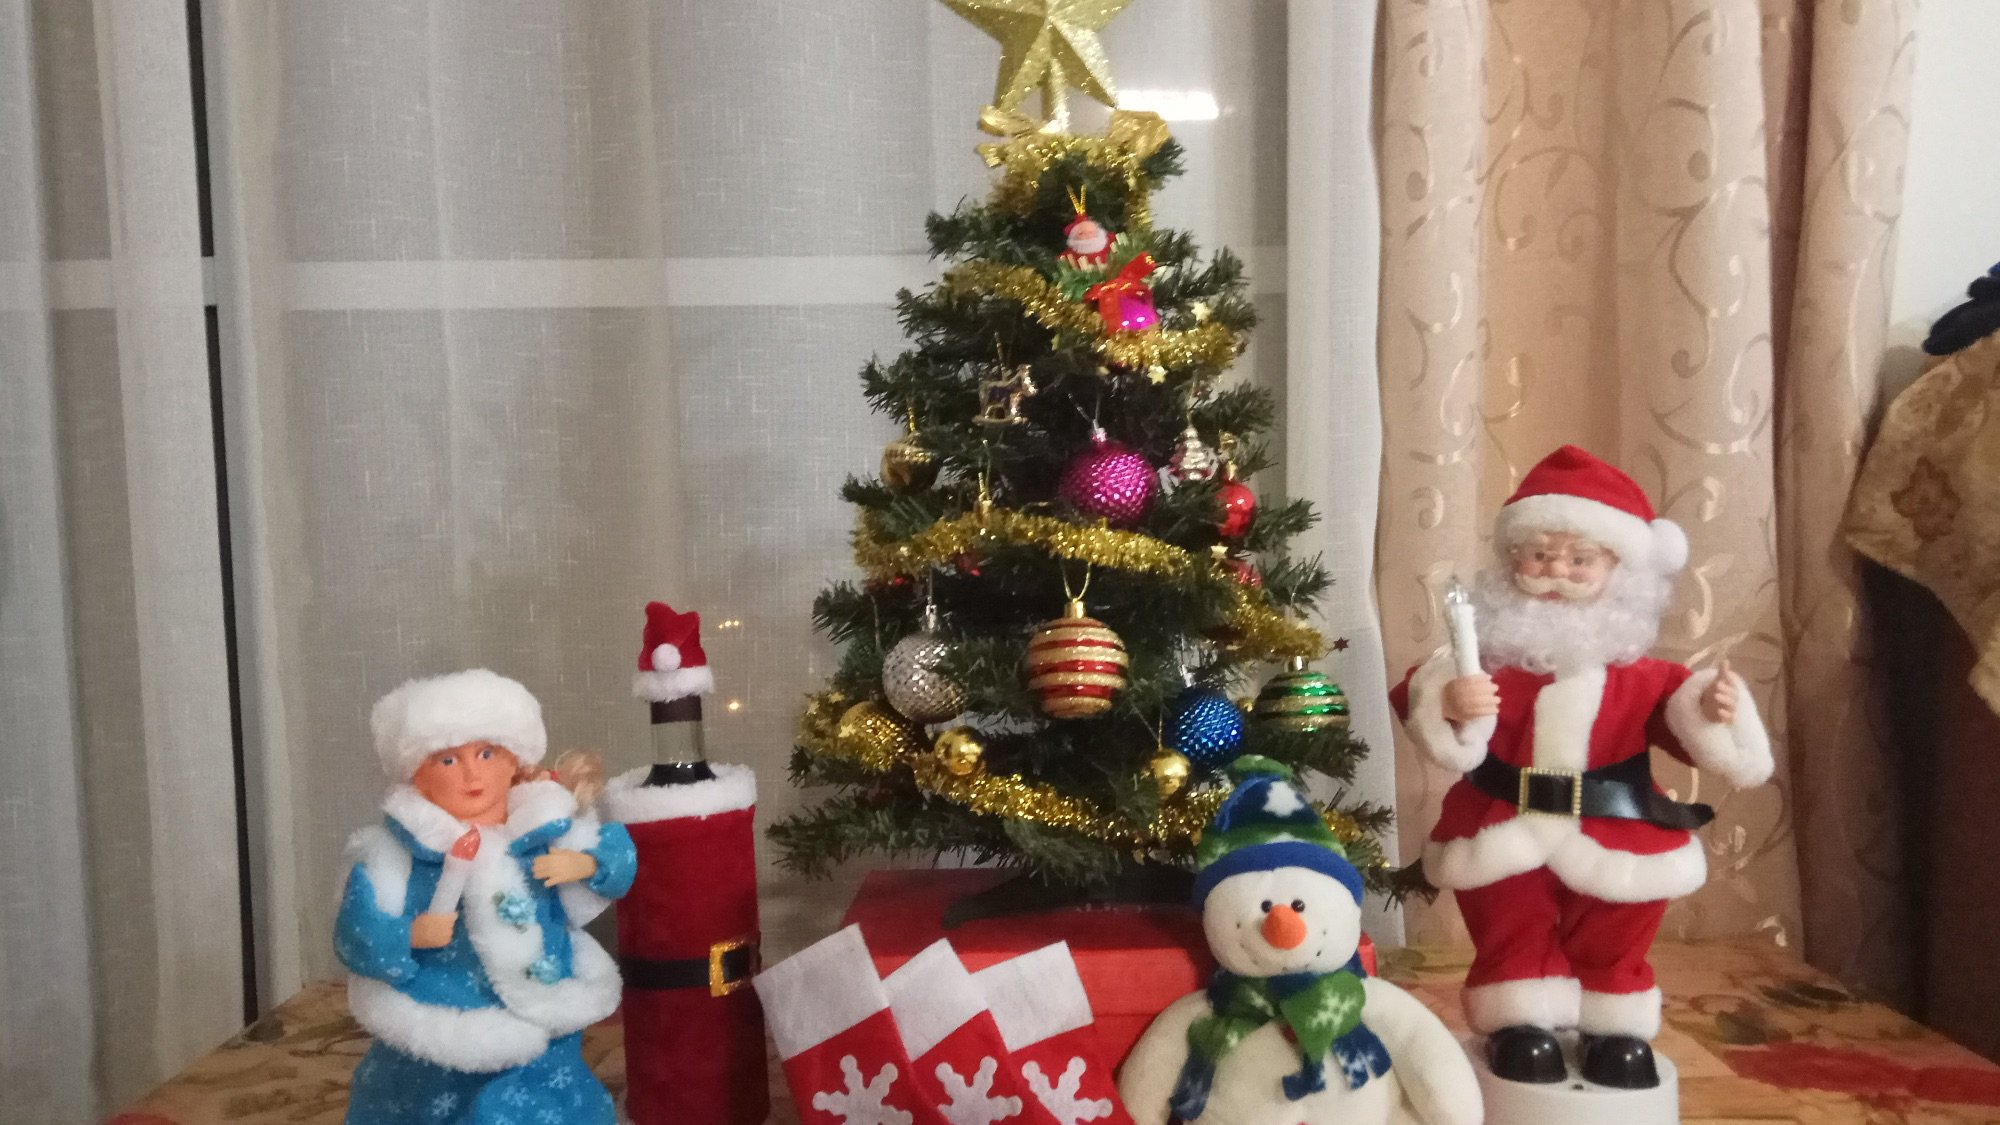 Christmas trees are making their way into Jewish homes.